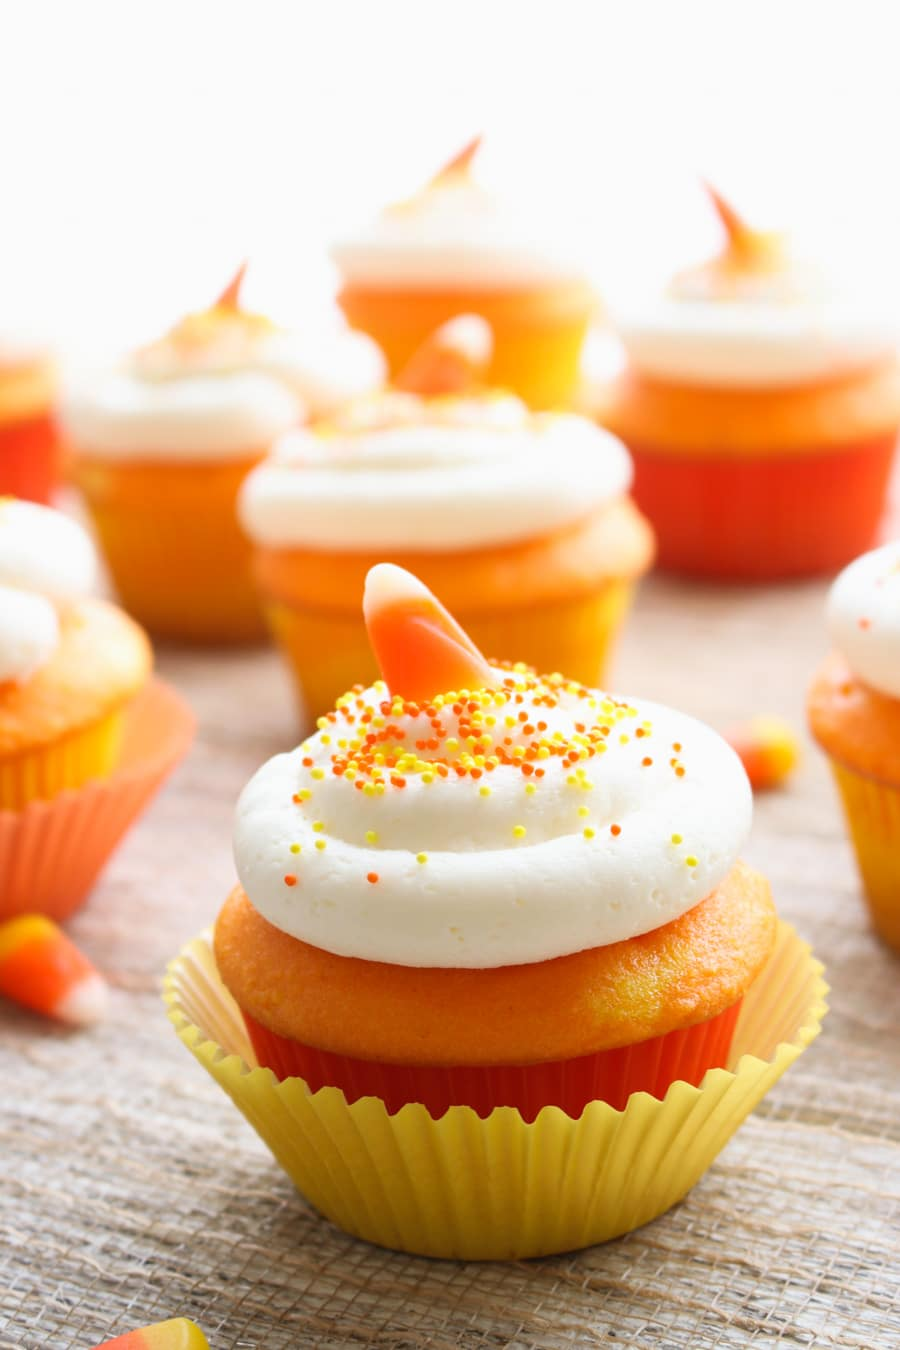 Candy corn Cupcake cameo photo